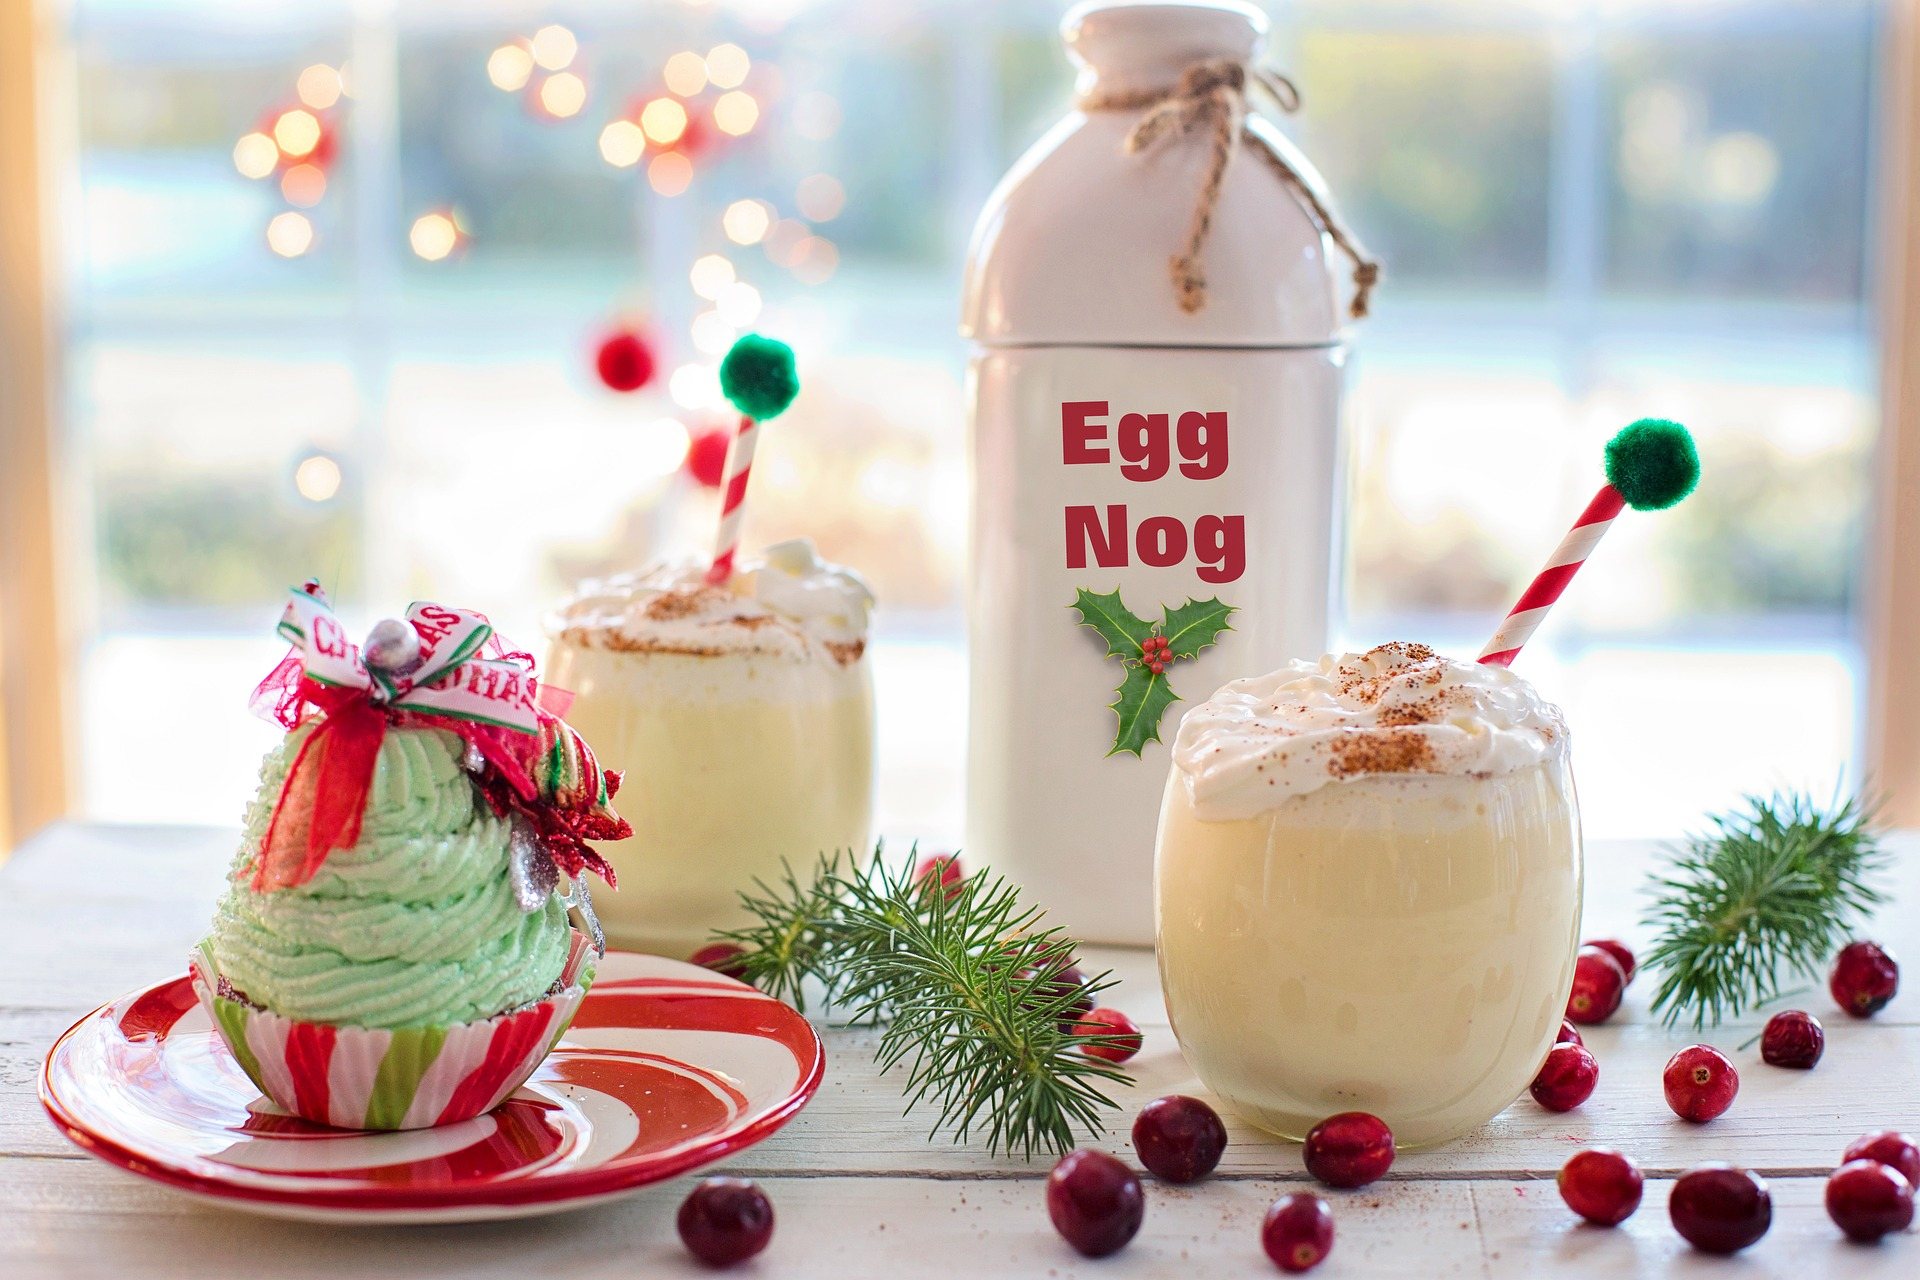 Raw egg dishes like egg nog are a food poisoning risk